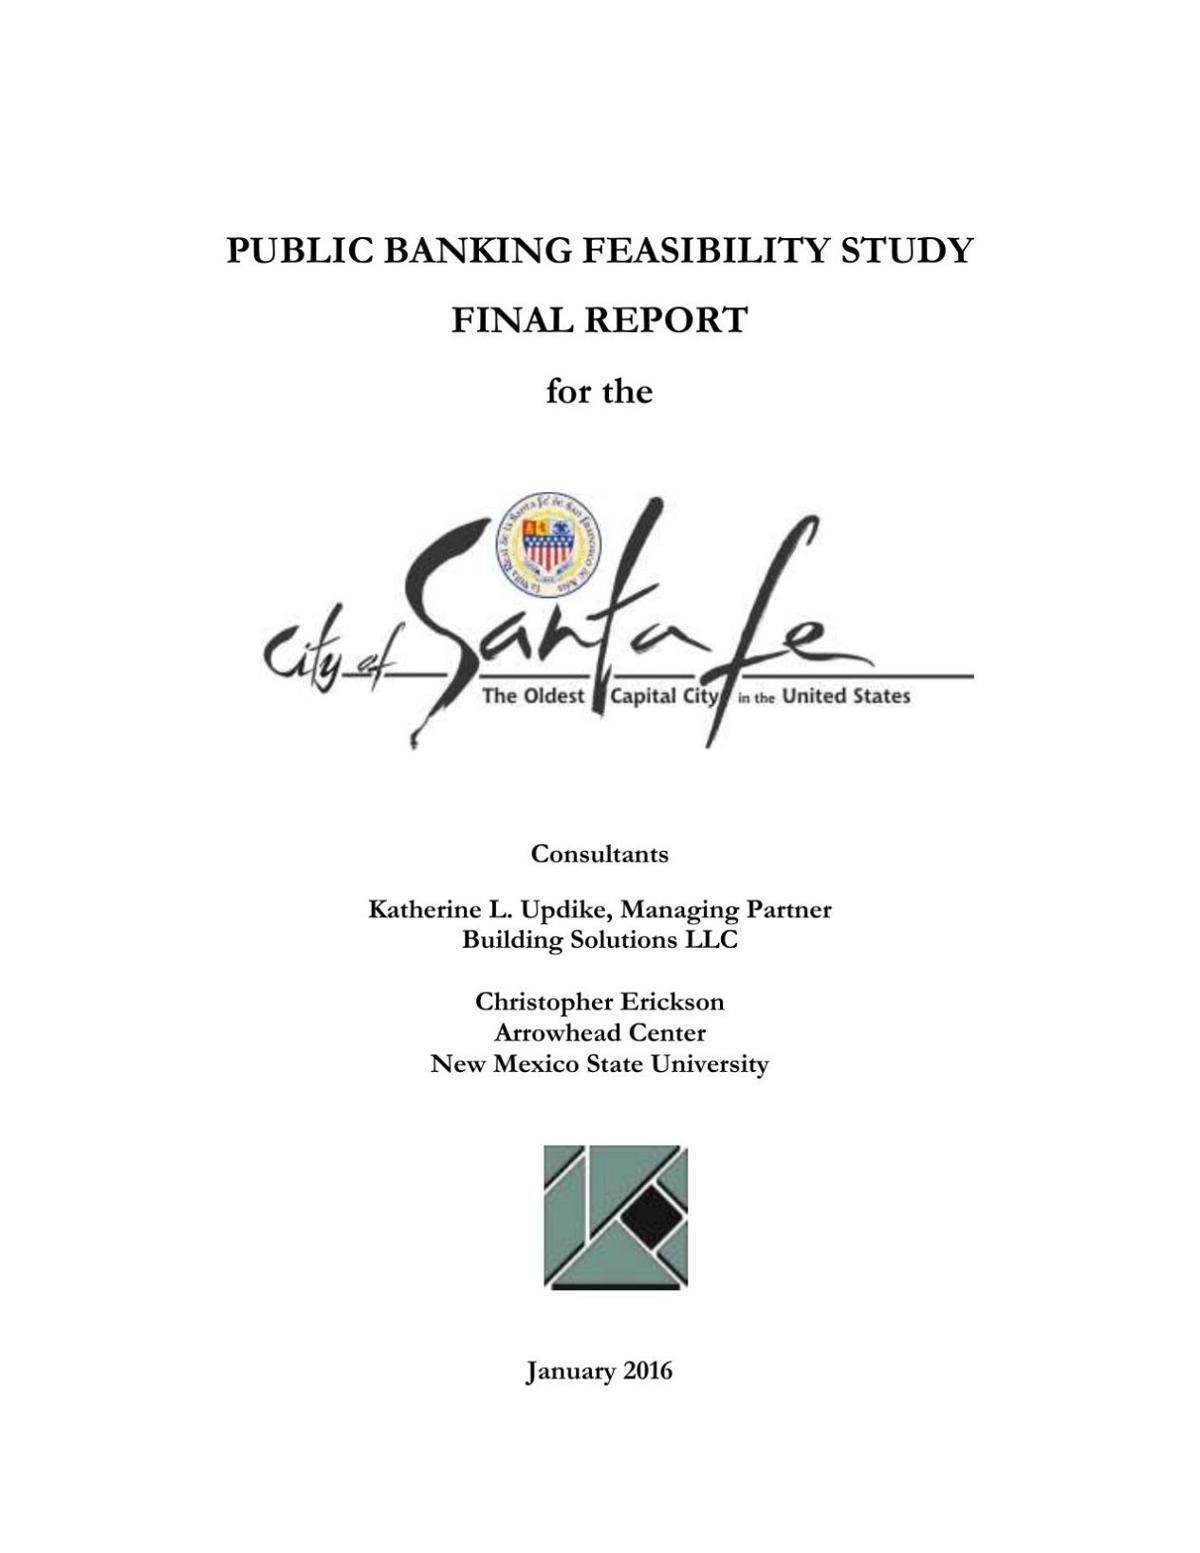 Final Report on Public Banking